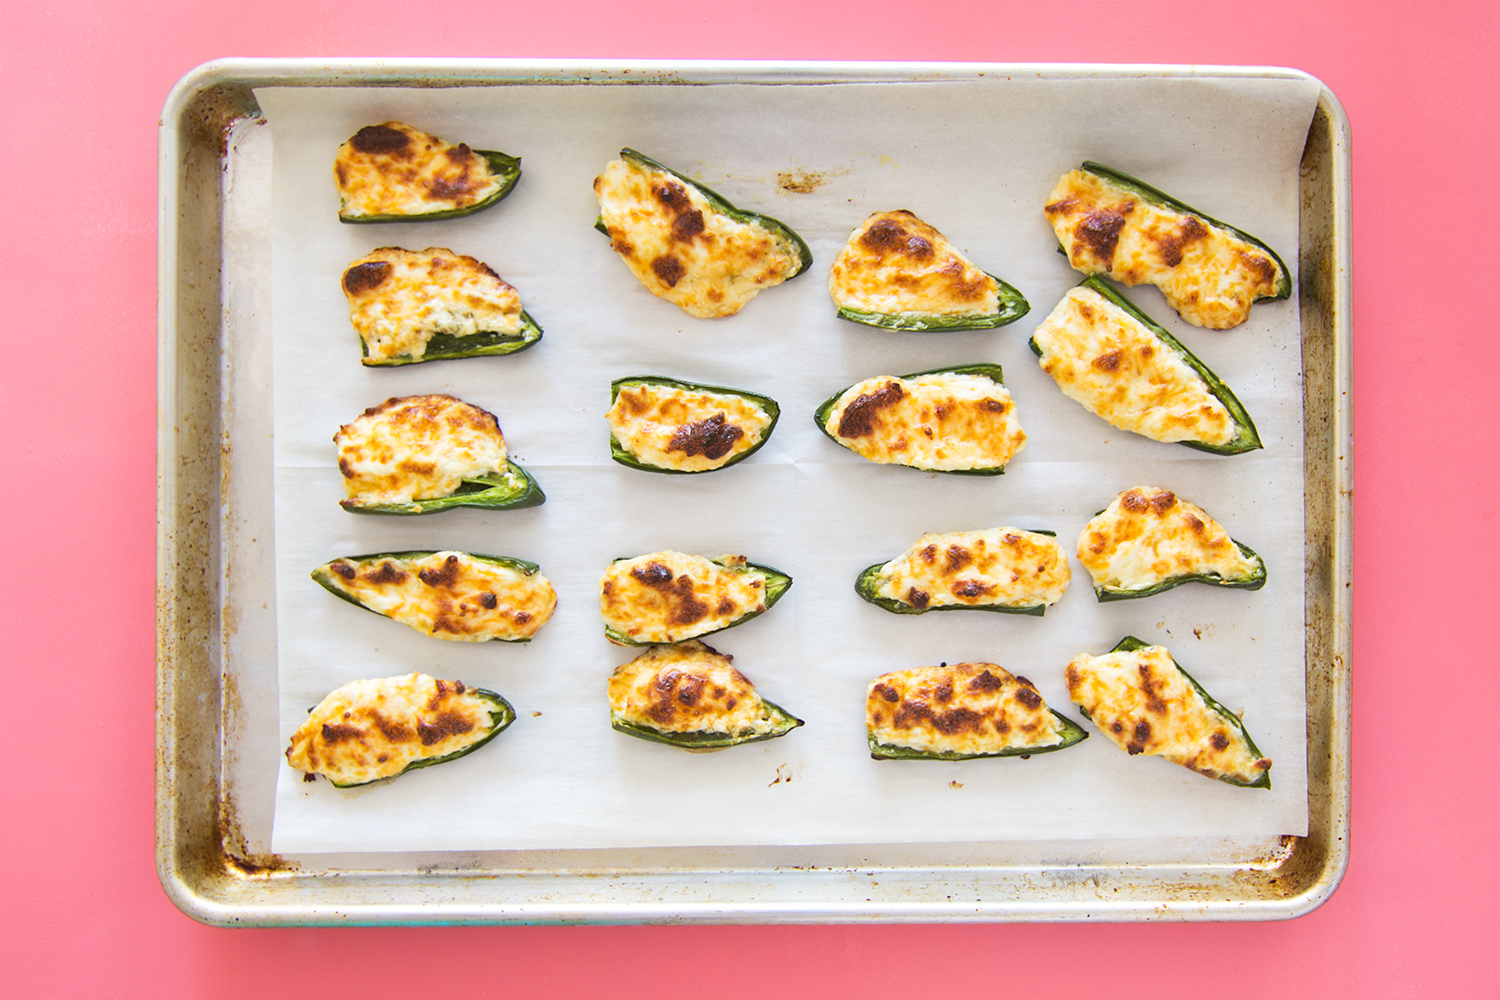 Serve these easy cheesy baked jalapeño poppers at your Super Bowl party or any time you need to make an appetizer in 20 minutes! (Click through for video recipe)